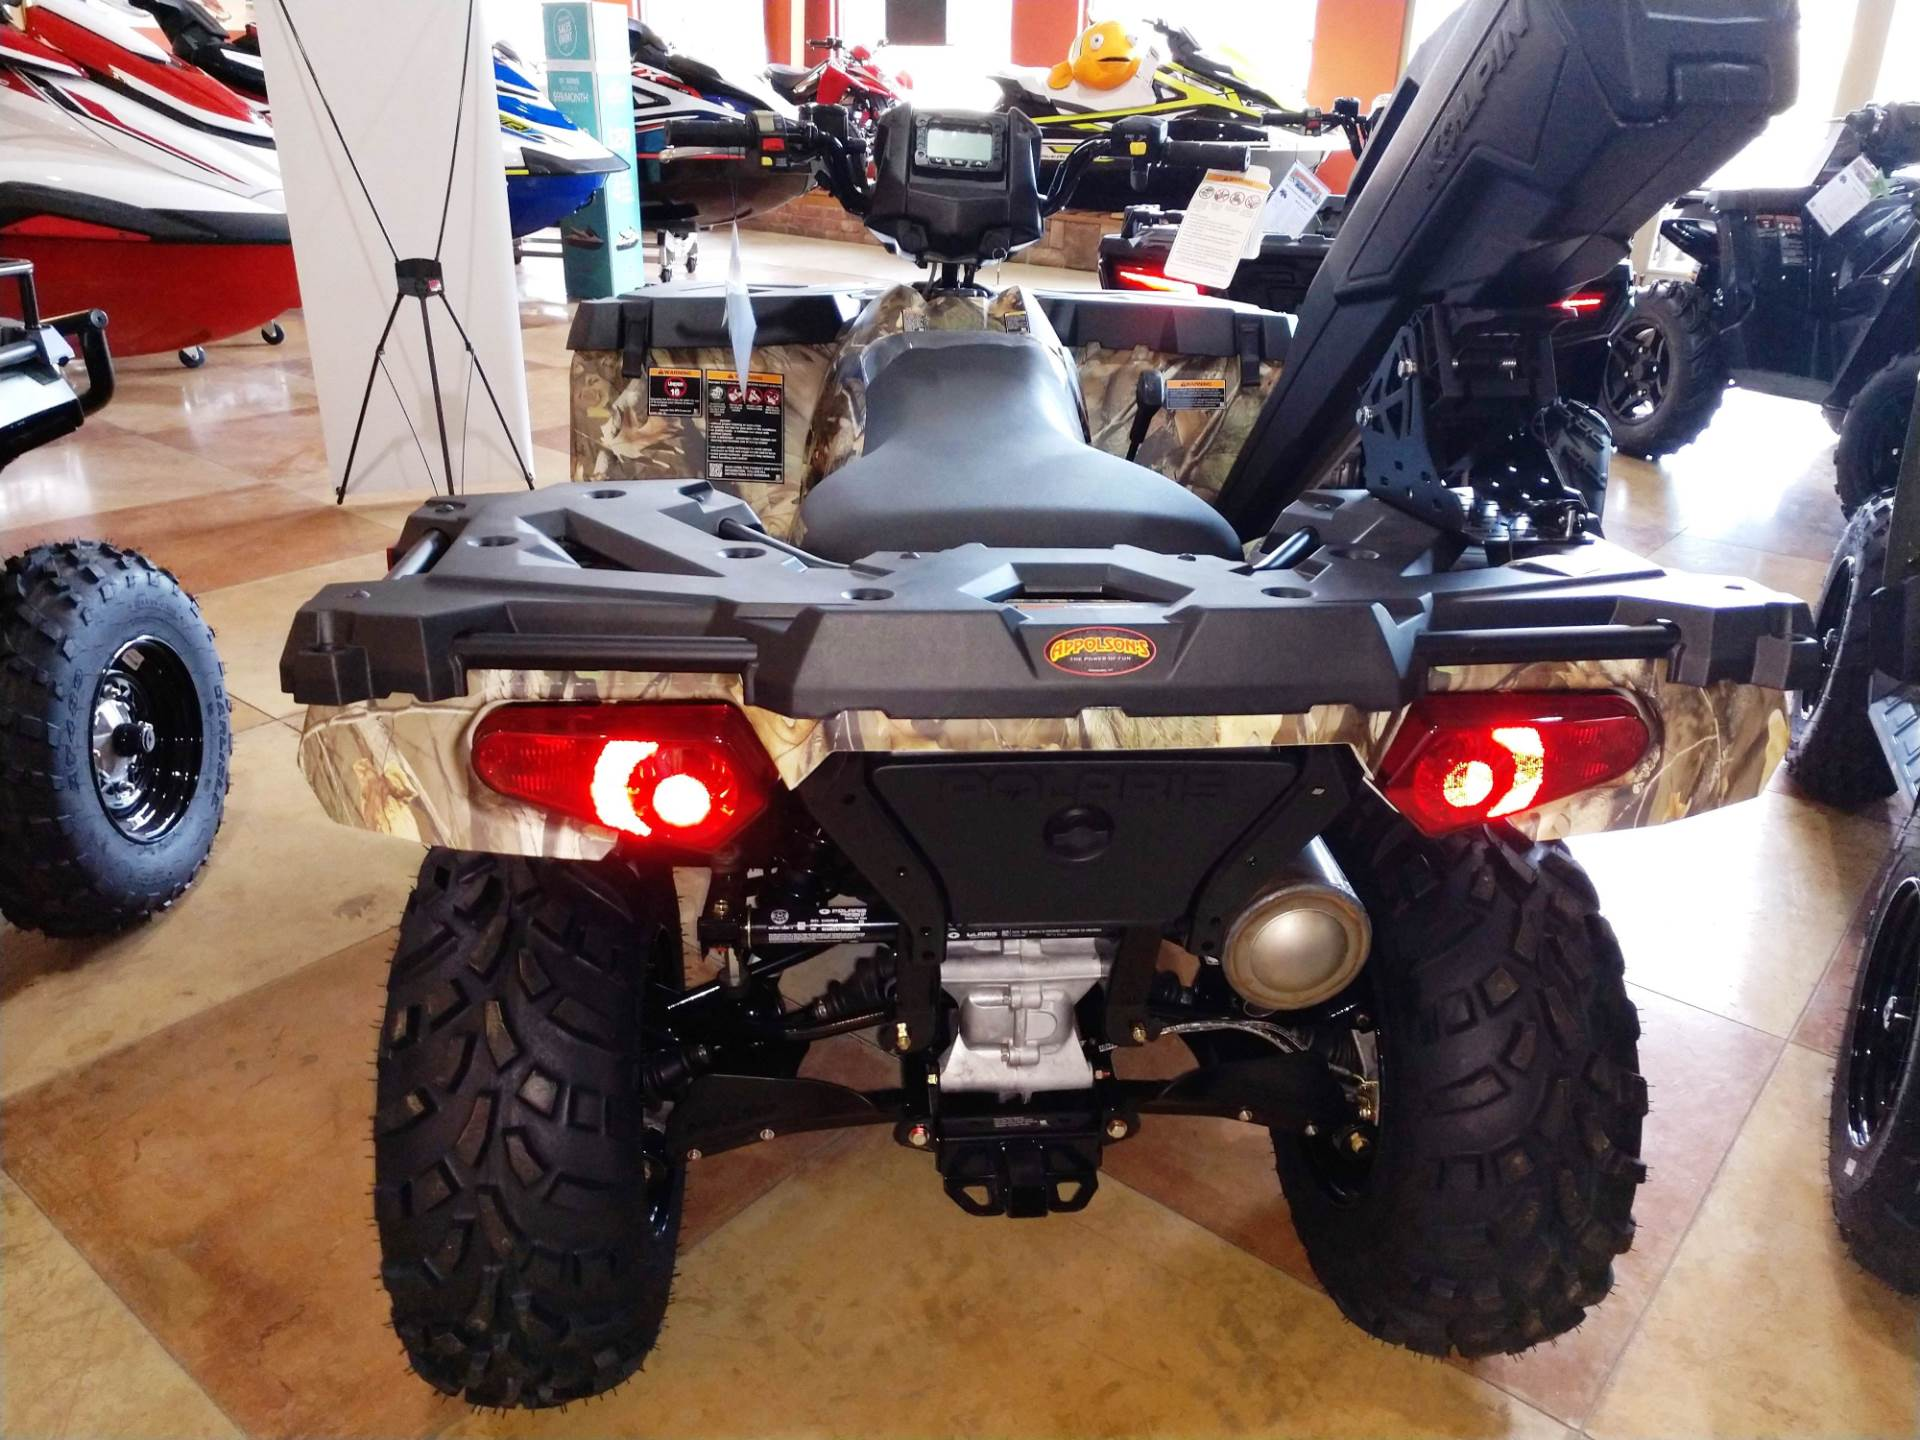 2019 Polaris Sportsman 570 EPS Camo in Hamburg, New York - Photo 4